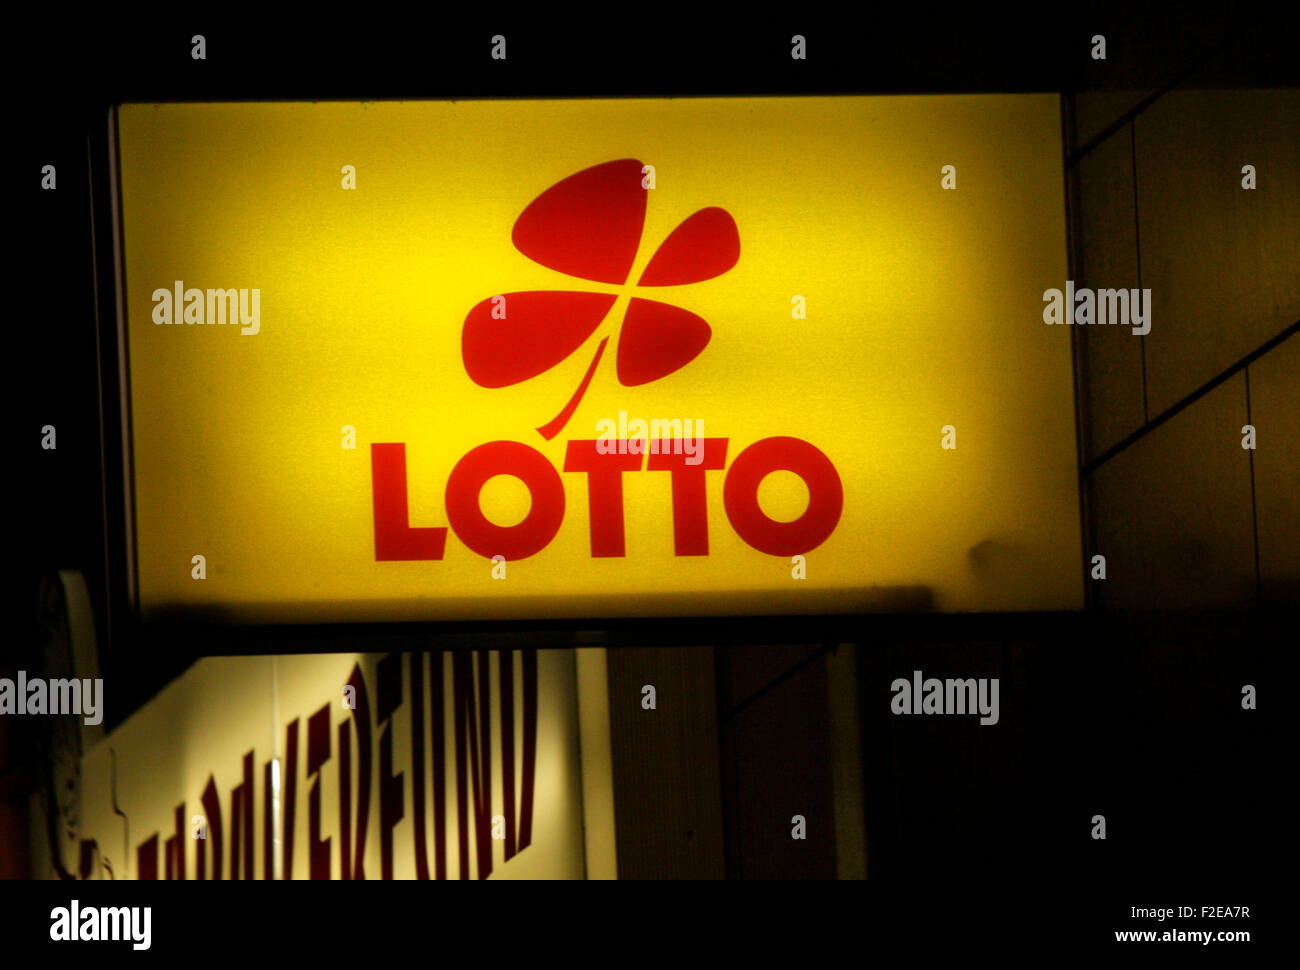 NOVEMBER 2013 - BERLIN: brands: the logo of the German state lottery 'Lotto', Berlin. - Stock Image